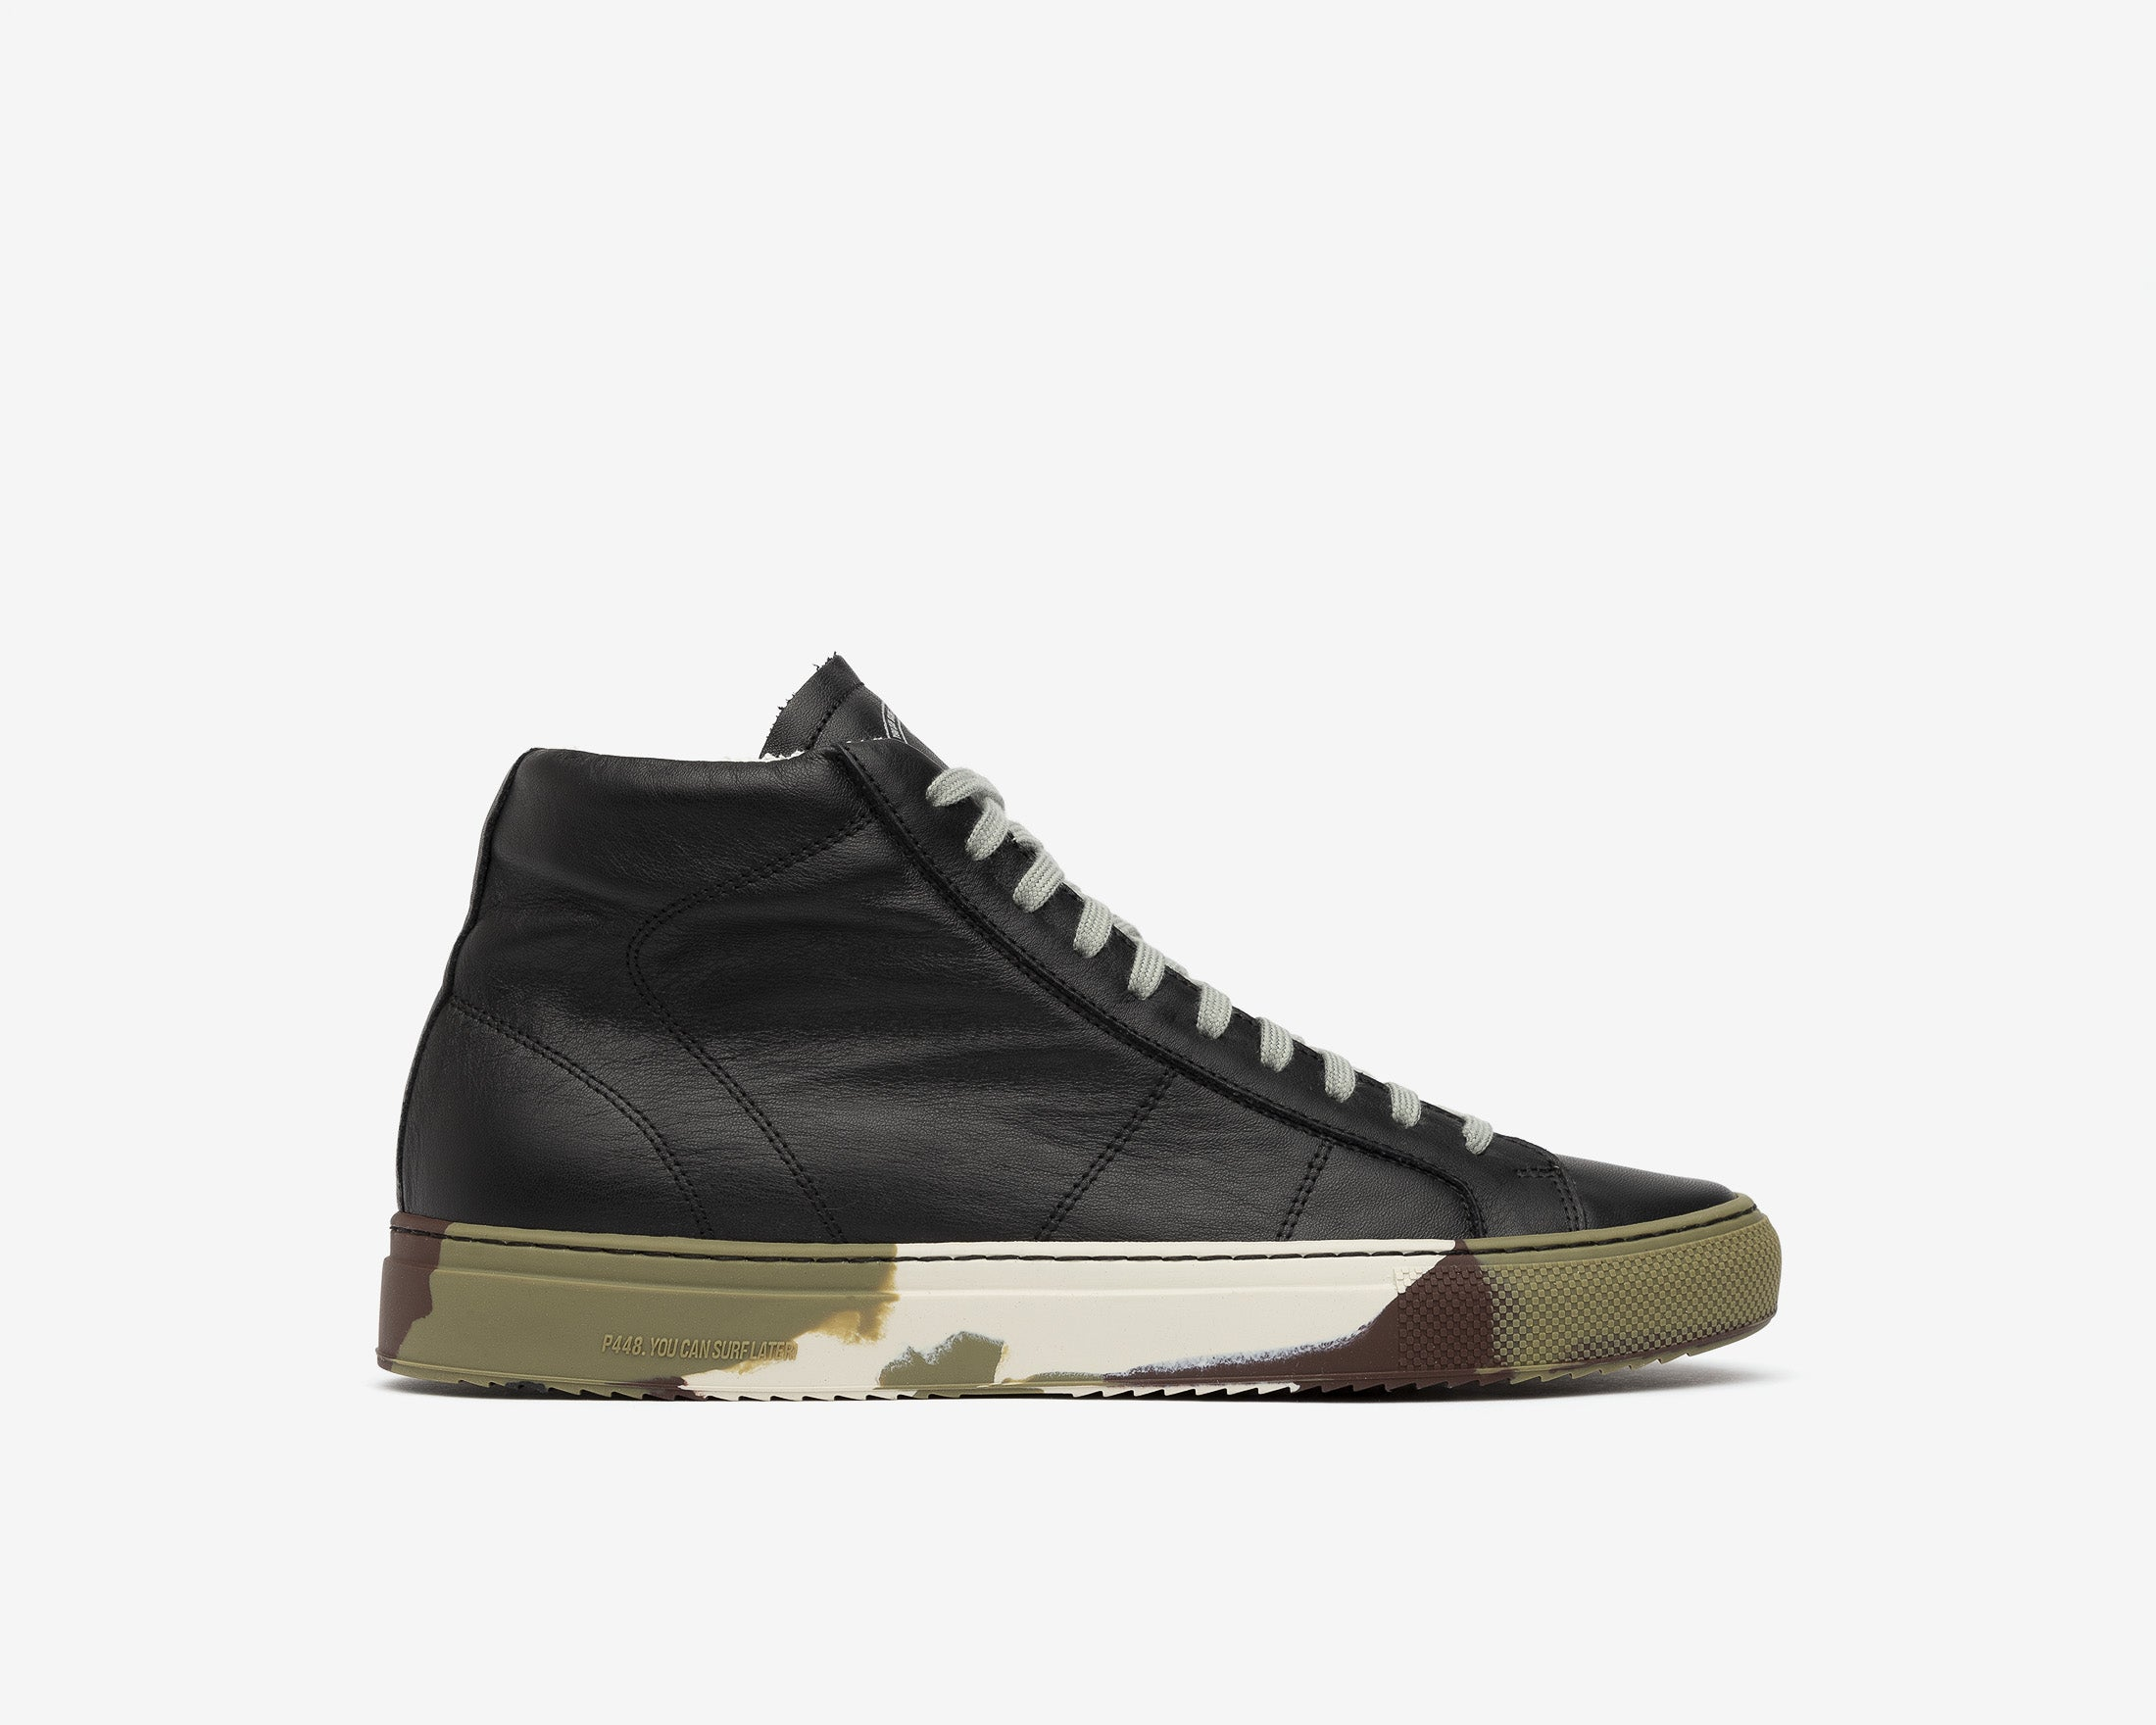 Star High-Top Sneaker in Black/Camo - Profile